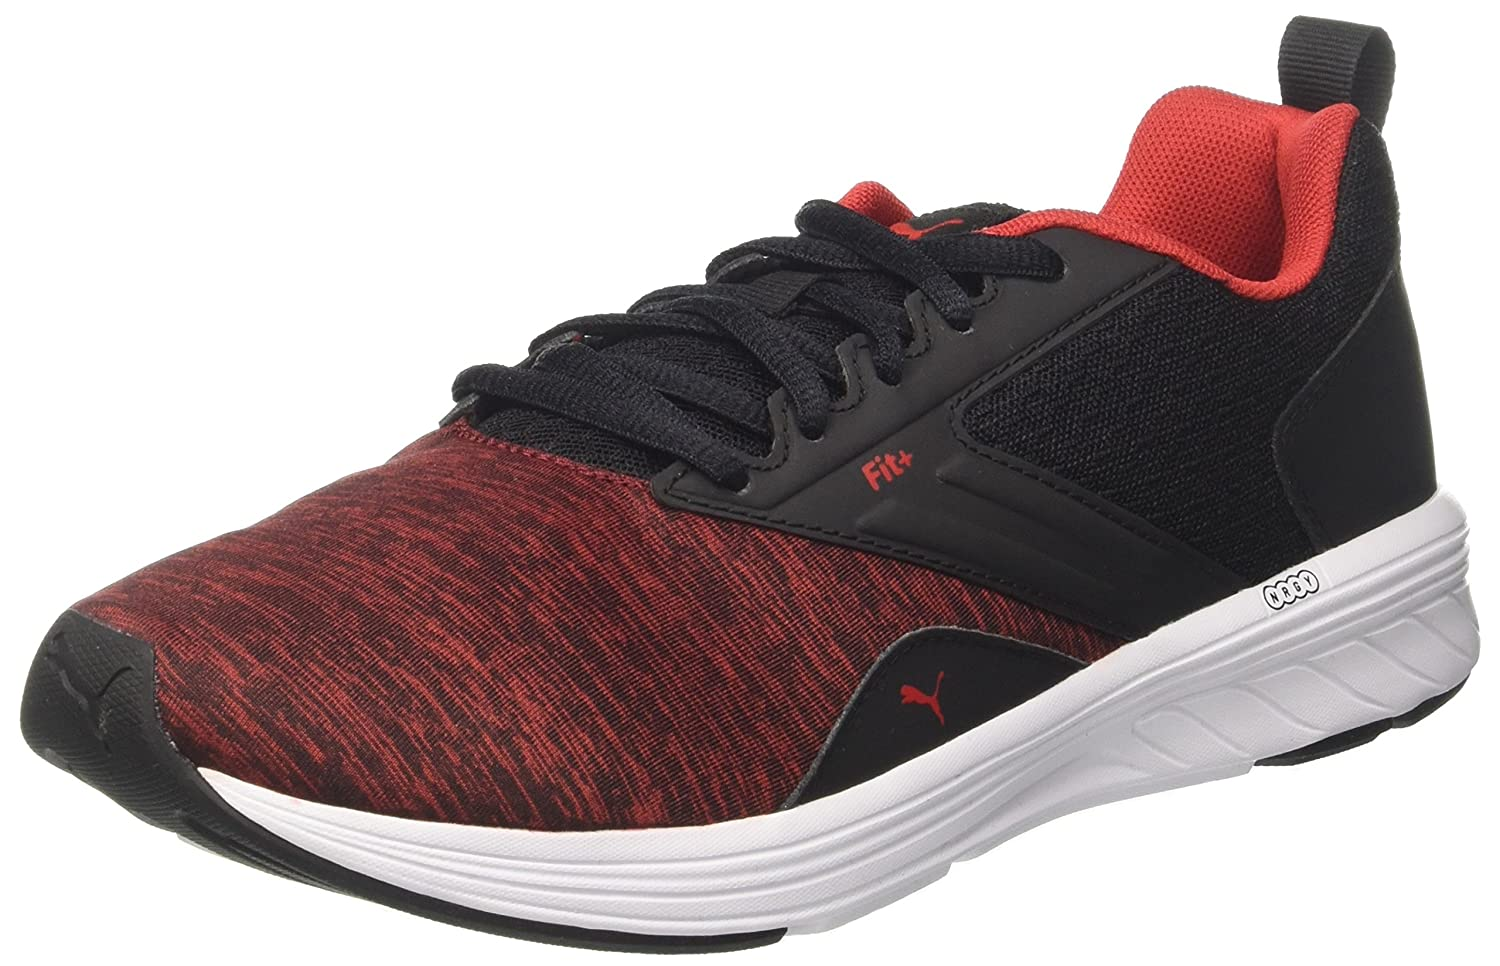 Puma Nrgy Comet, Zapatillas de Cross Unisex Adulto 39 EU|Negro (Puma Black-high Risk Red)